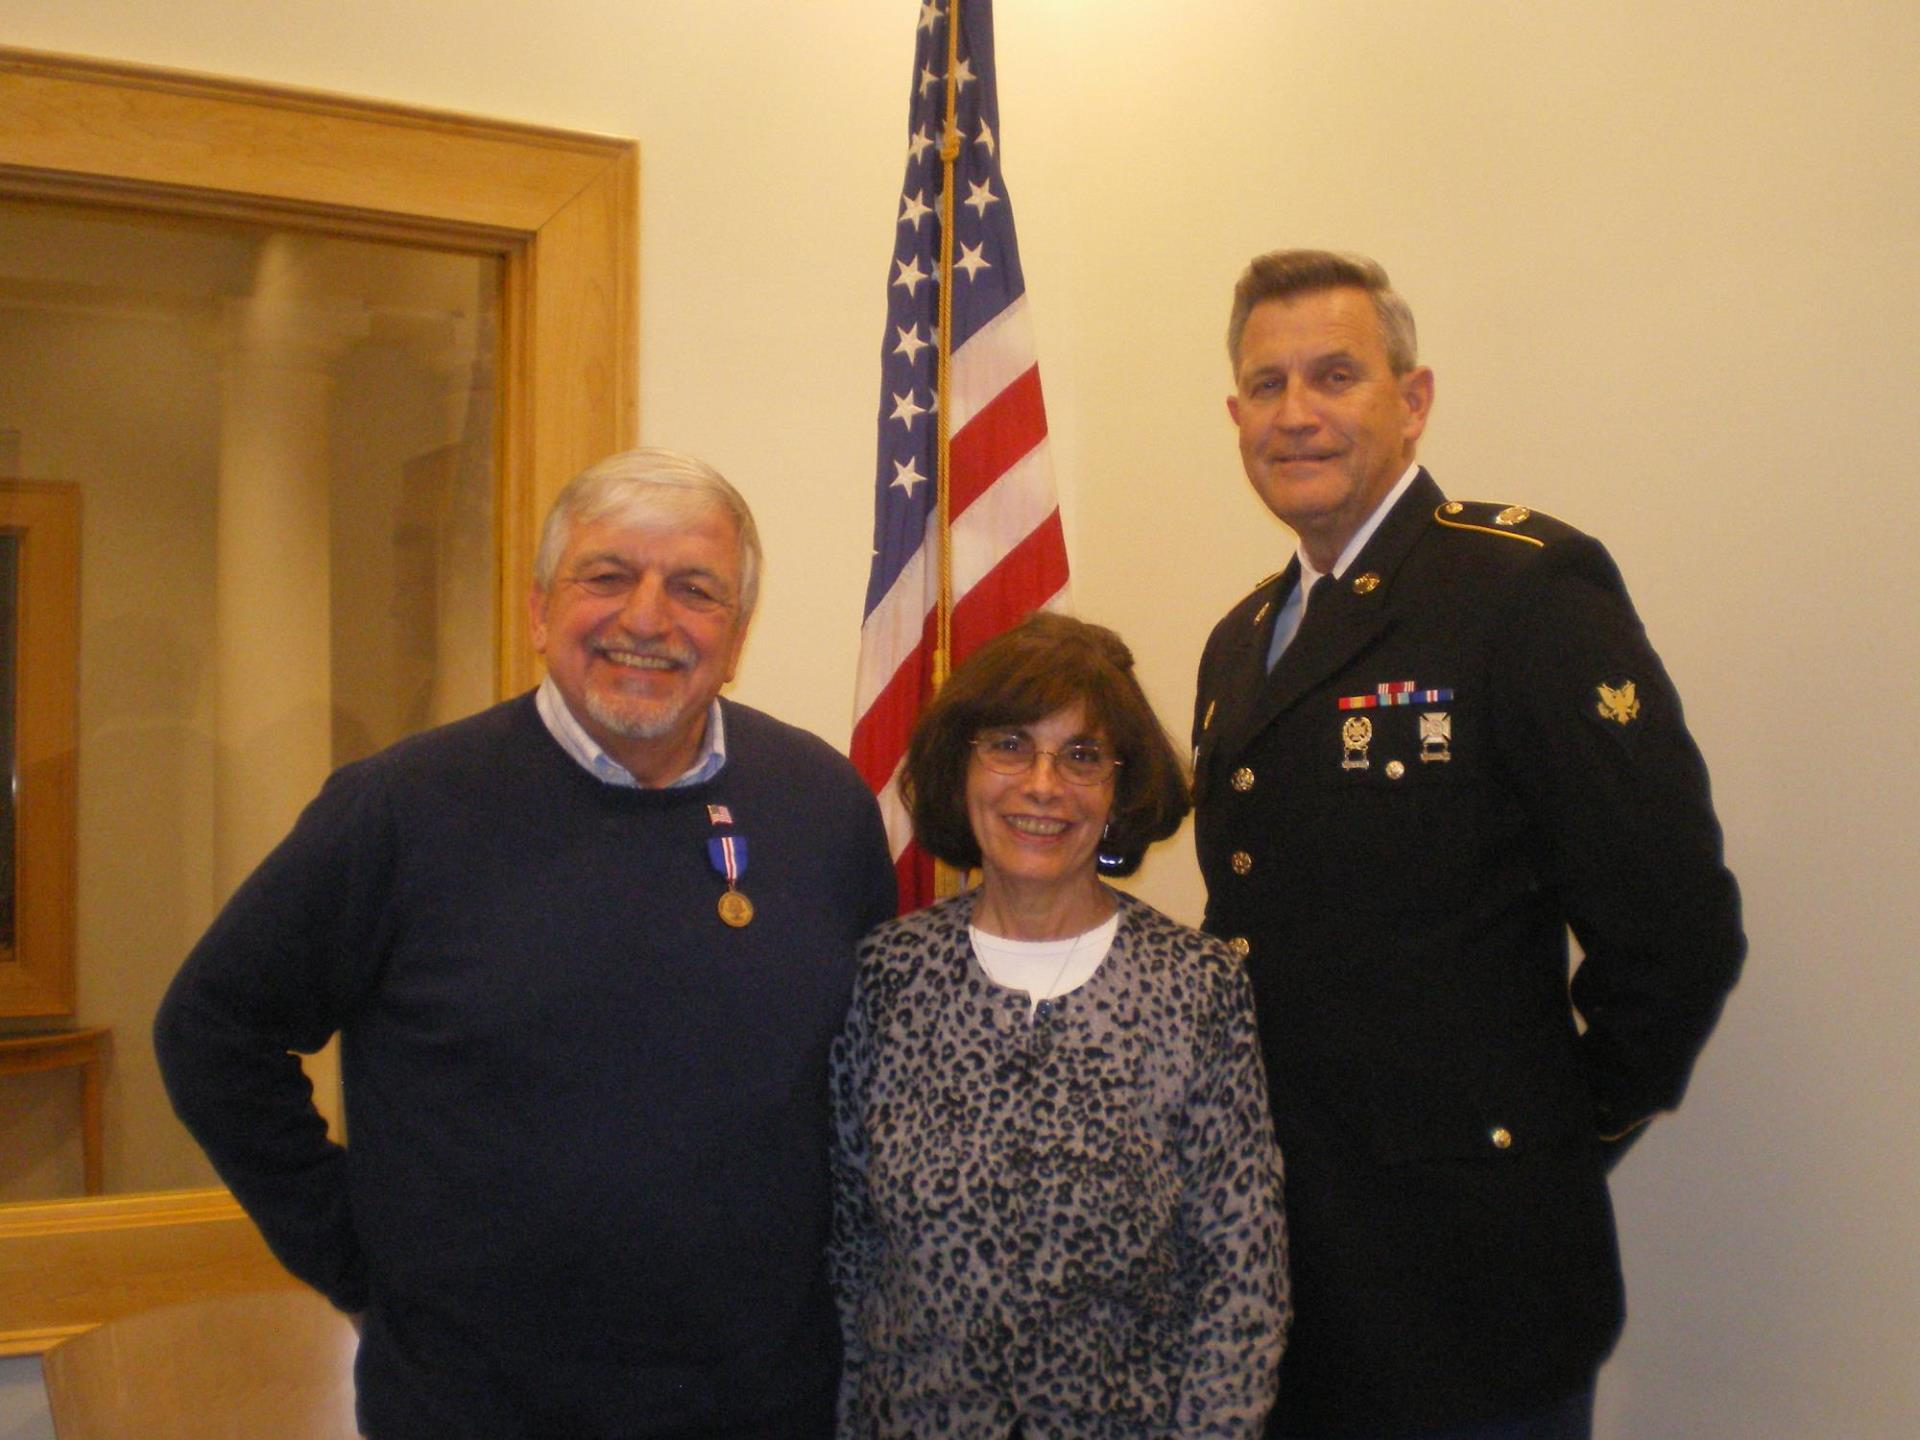 Veteran's Medal Ceremony